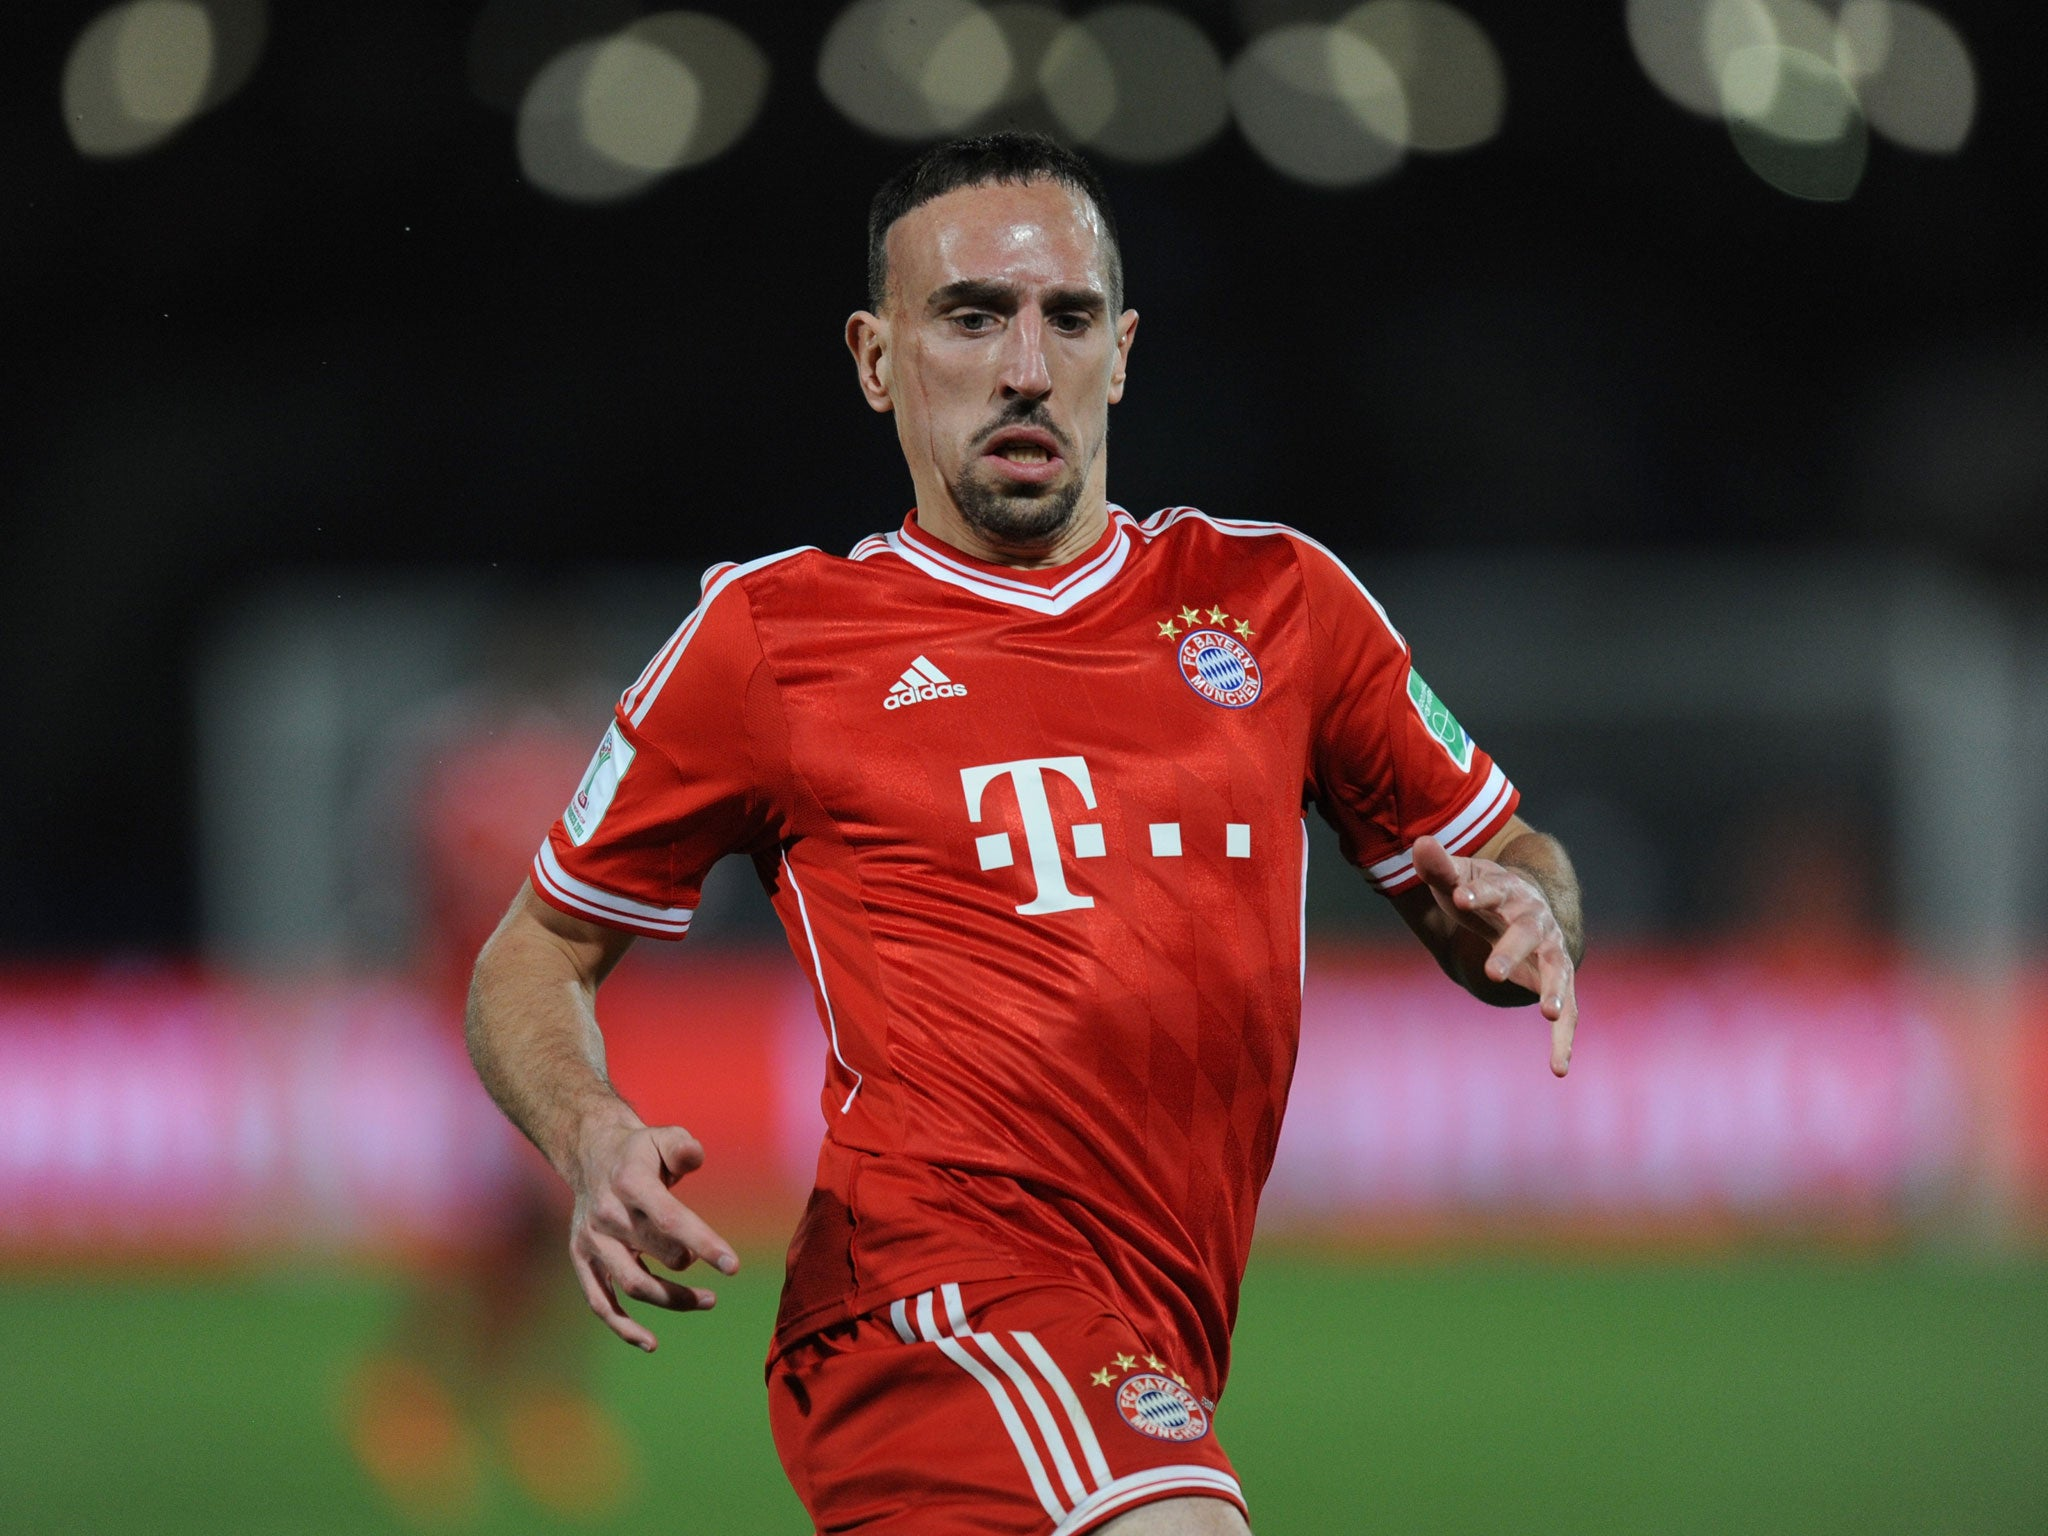 Franck Ribery will miss Champions League tie against Arsenal